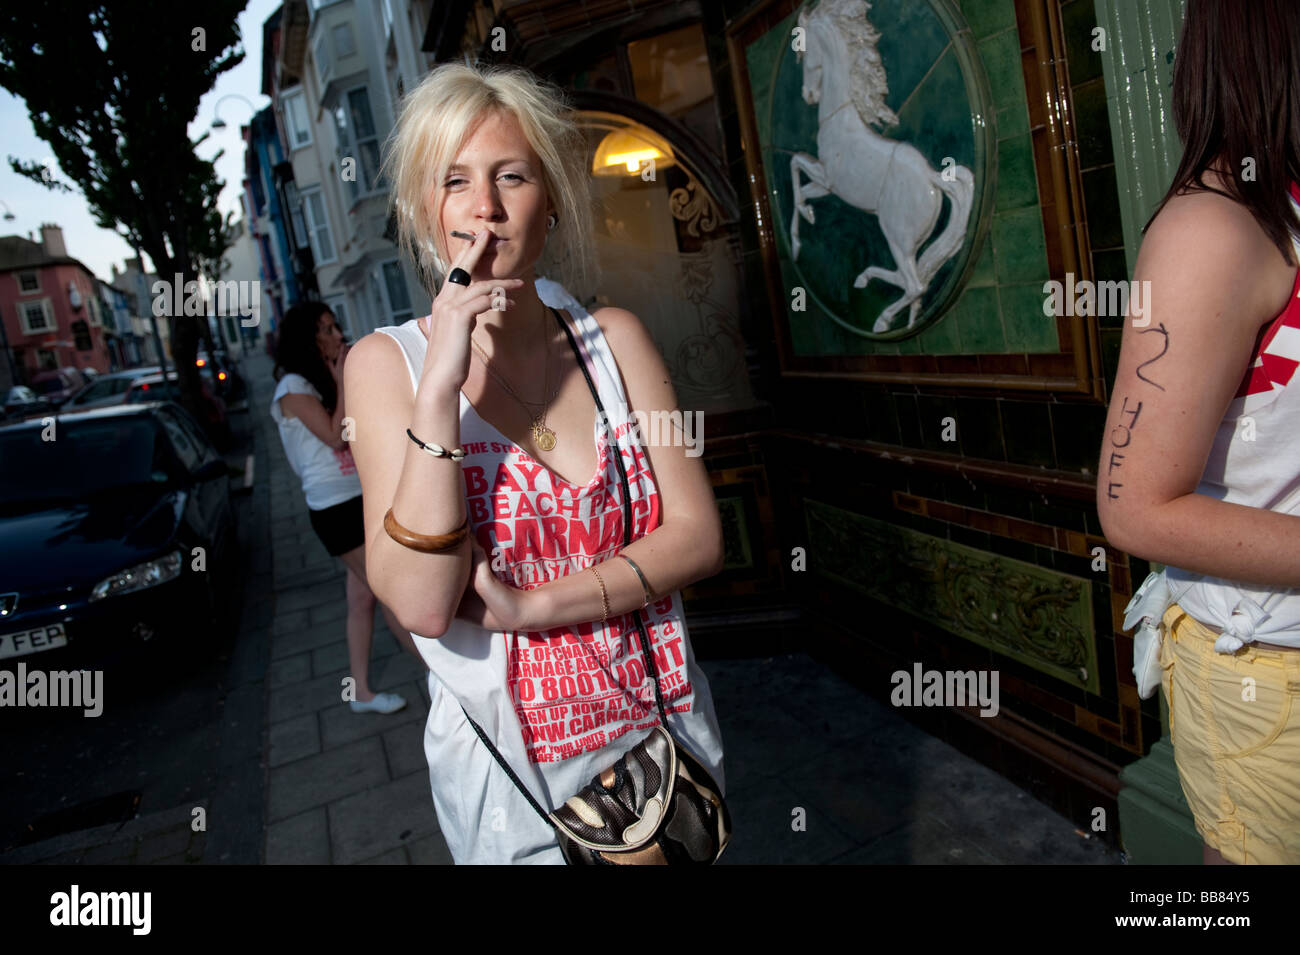 Young blonde haired woman smoking cigarette outside on a Carnage organised pub crawl, Aberystwyth Wales UK - Stock Image